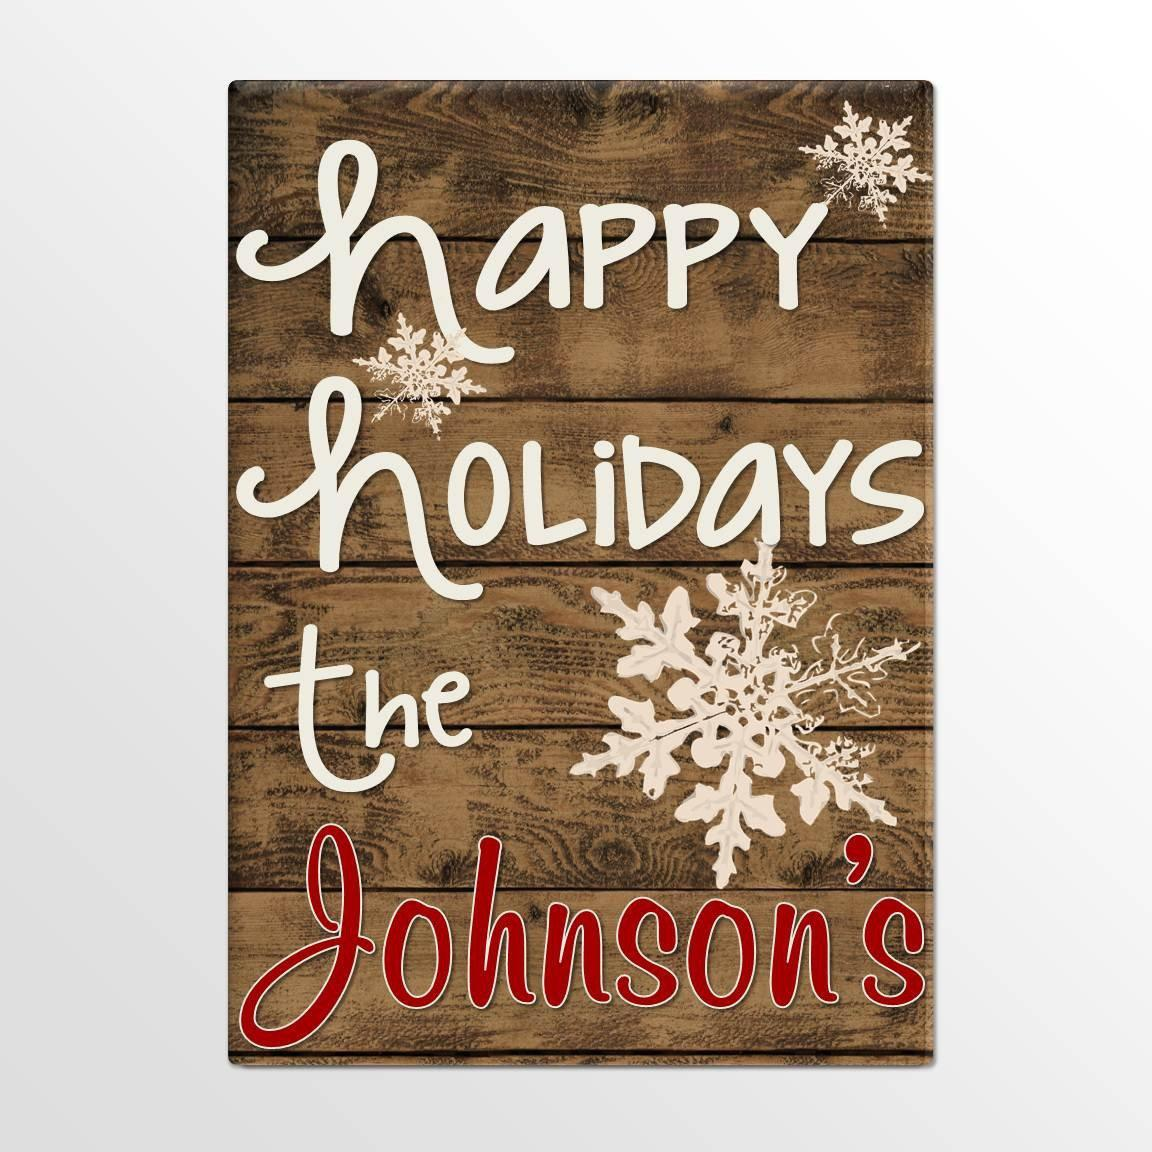 Personalized-Holiday-Canvas-Signs-Happy-Holidays-Canvas